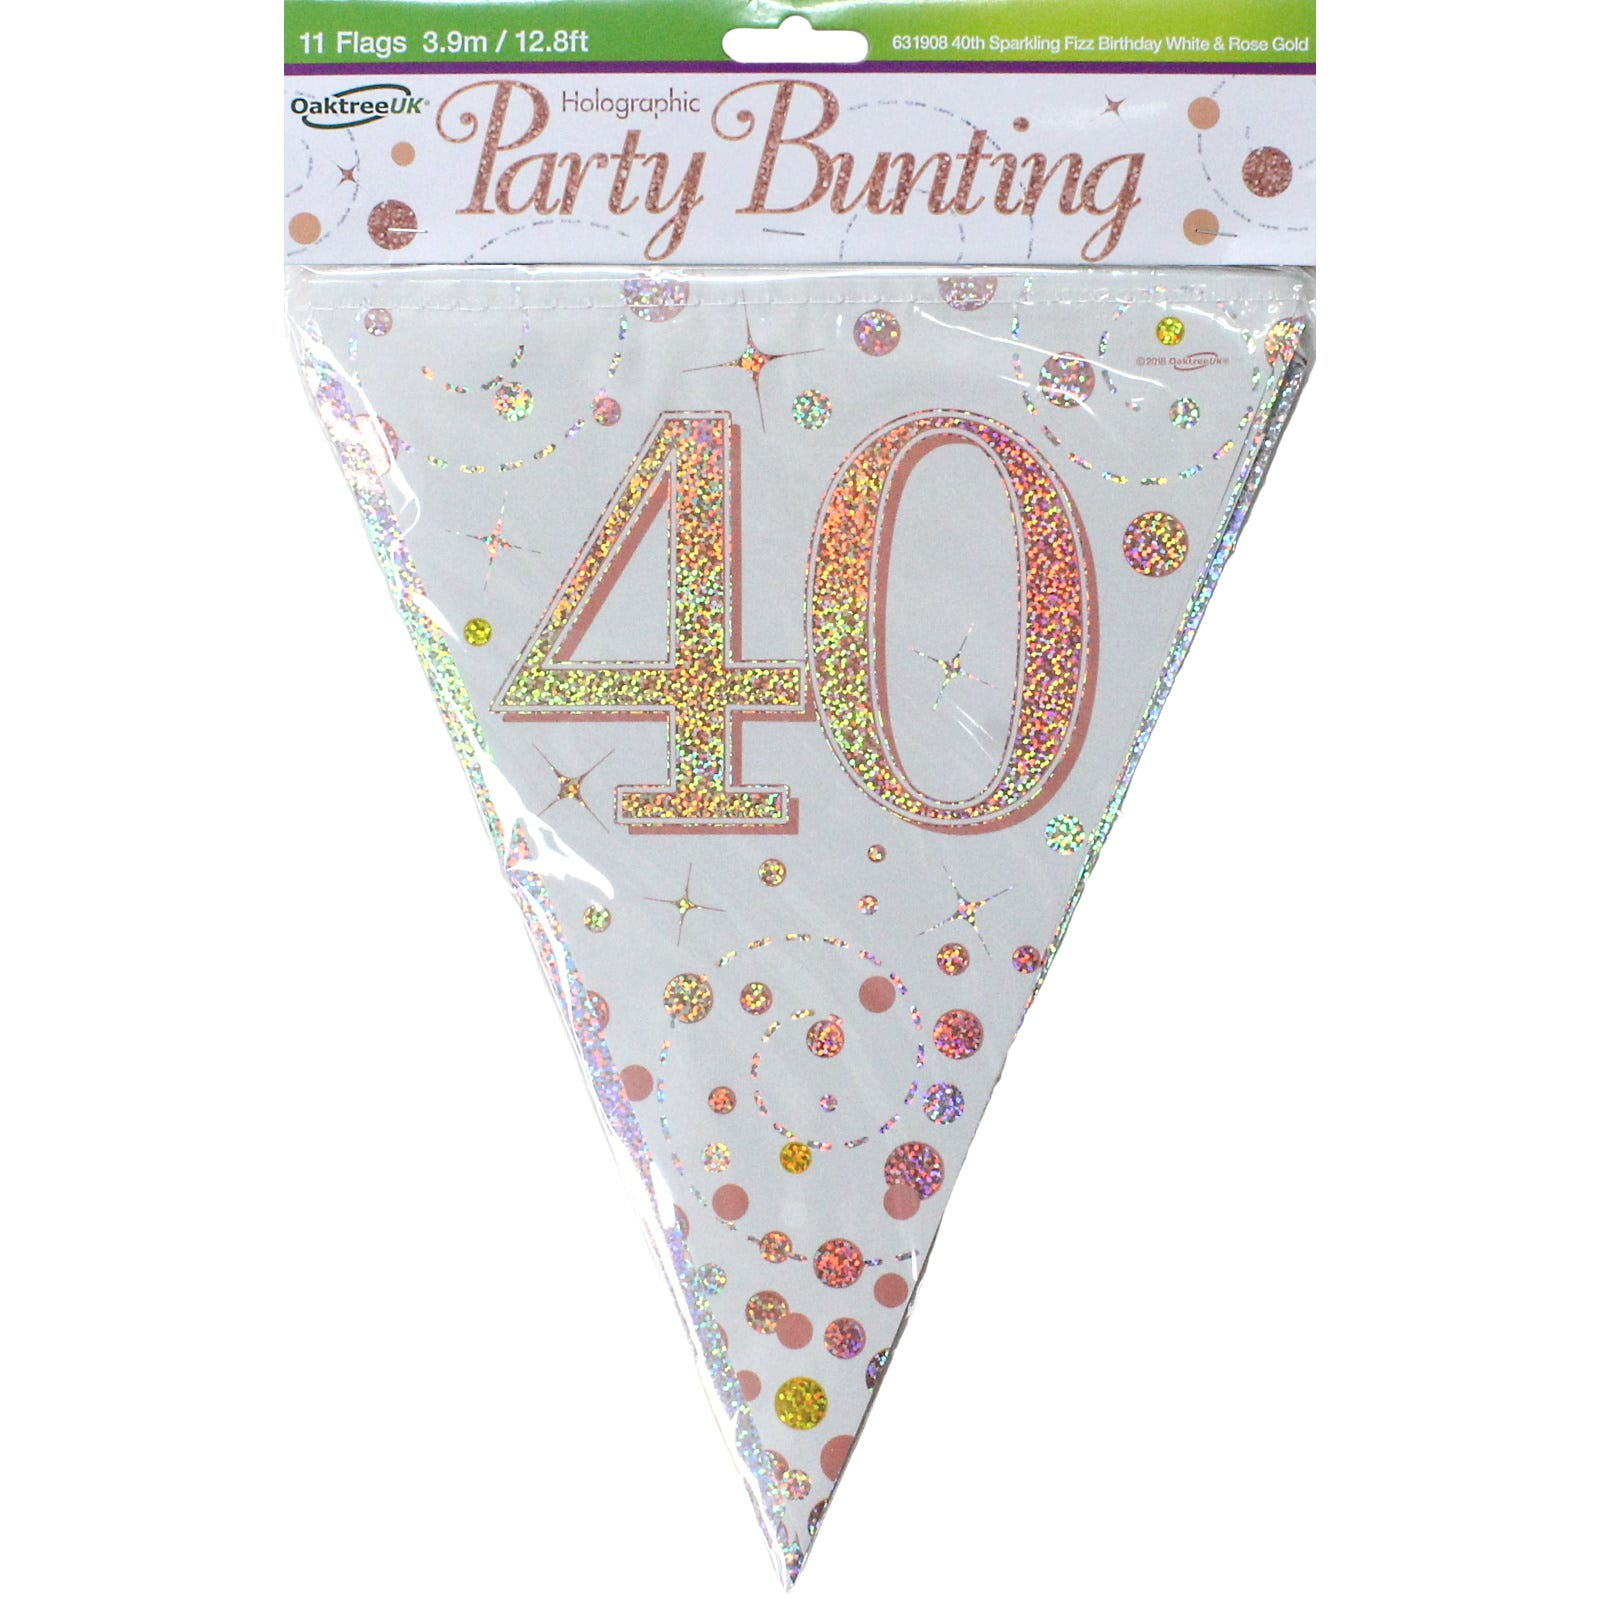 3.9m Flag Bunting Sparkling Fizz Birthday WHITE /& ROSE GOLD  Holographic Choose